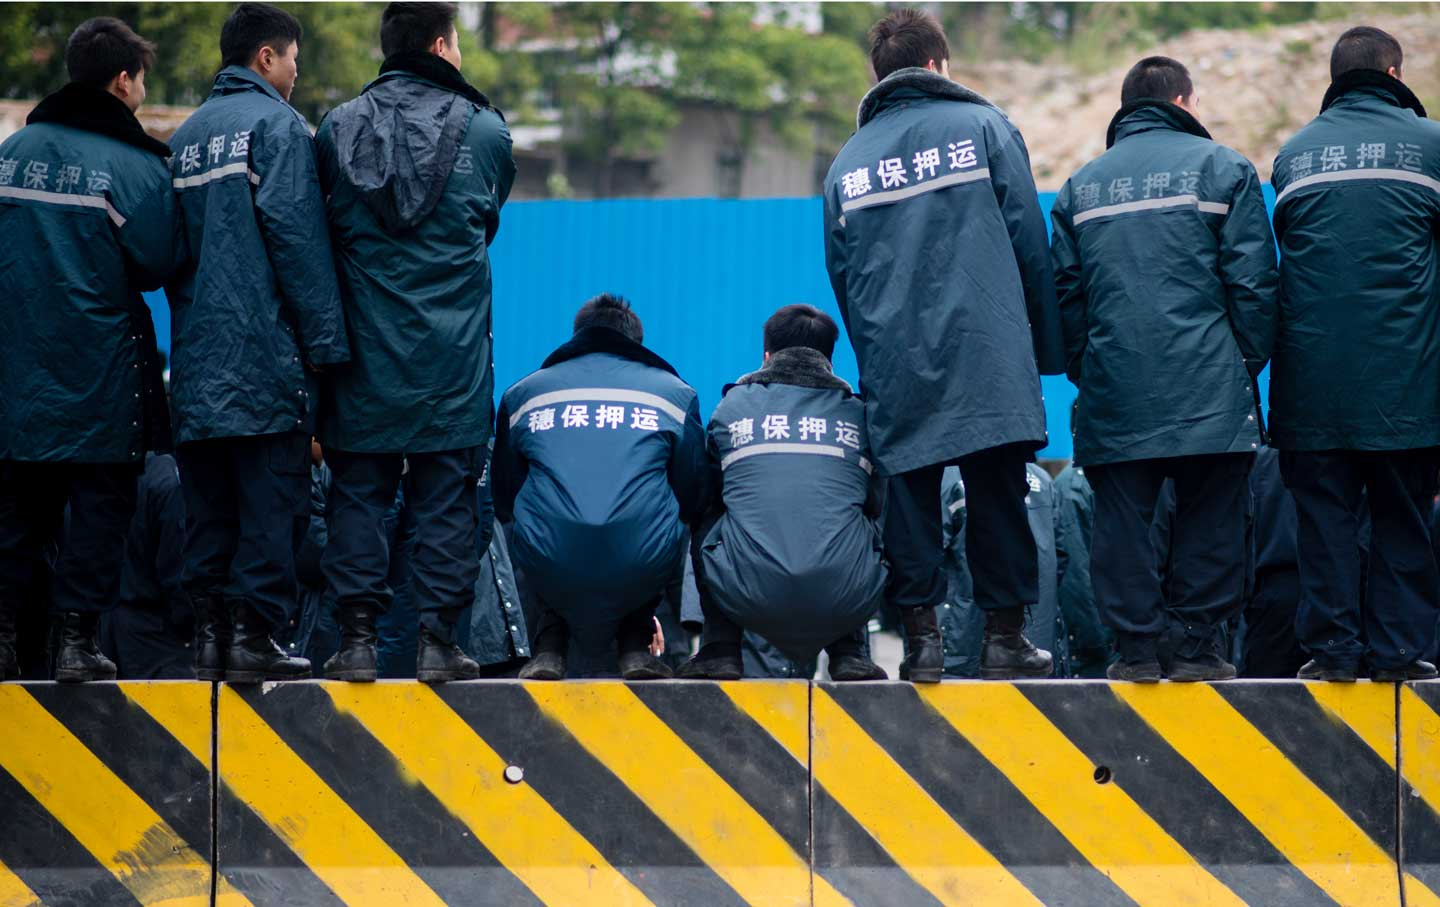 China's Latest Crackdown on Workers Is Unprecedented